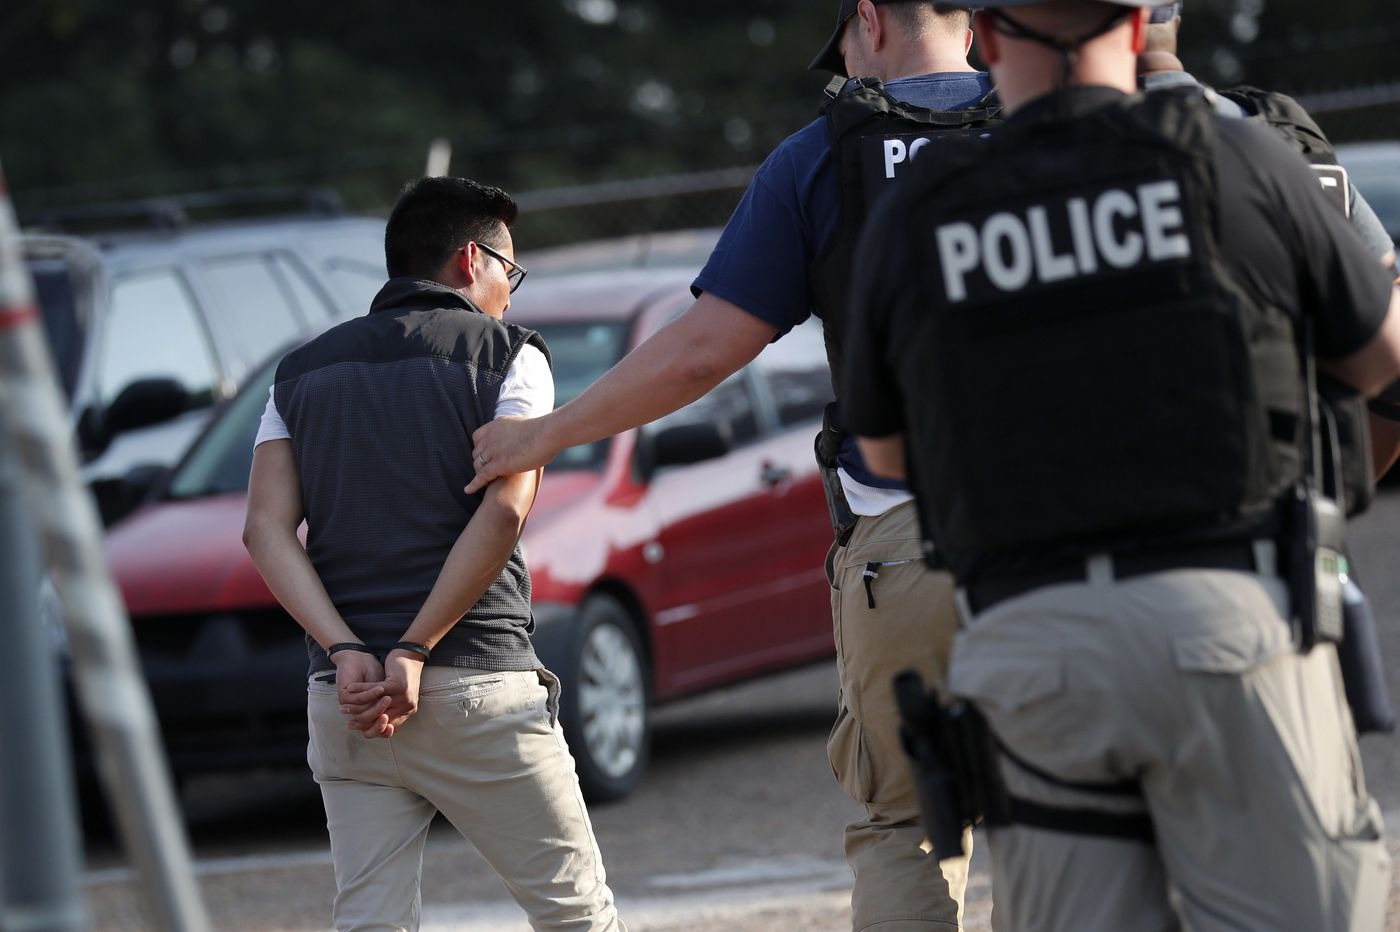 That heartless Mississippi ICE raid also revealed the cruelty behind modern U.S. capitalism | Will Bunch